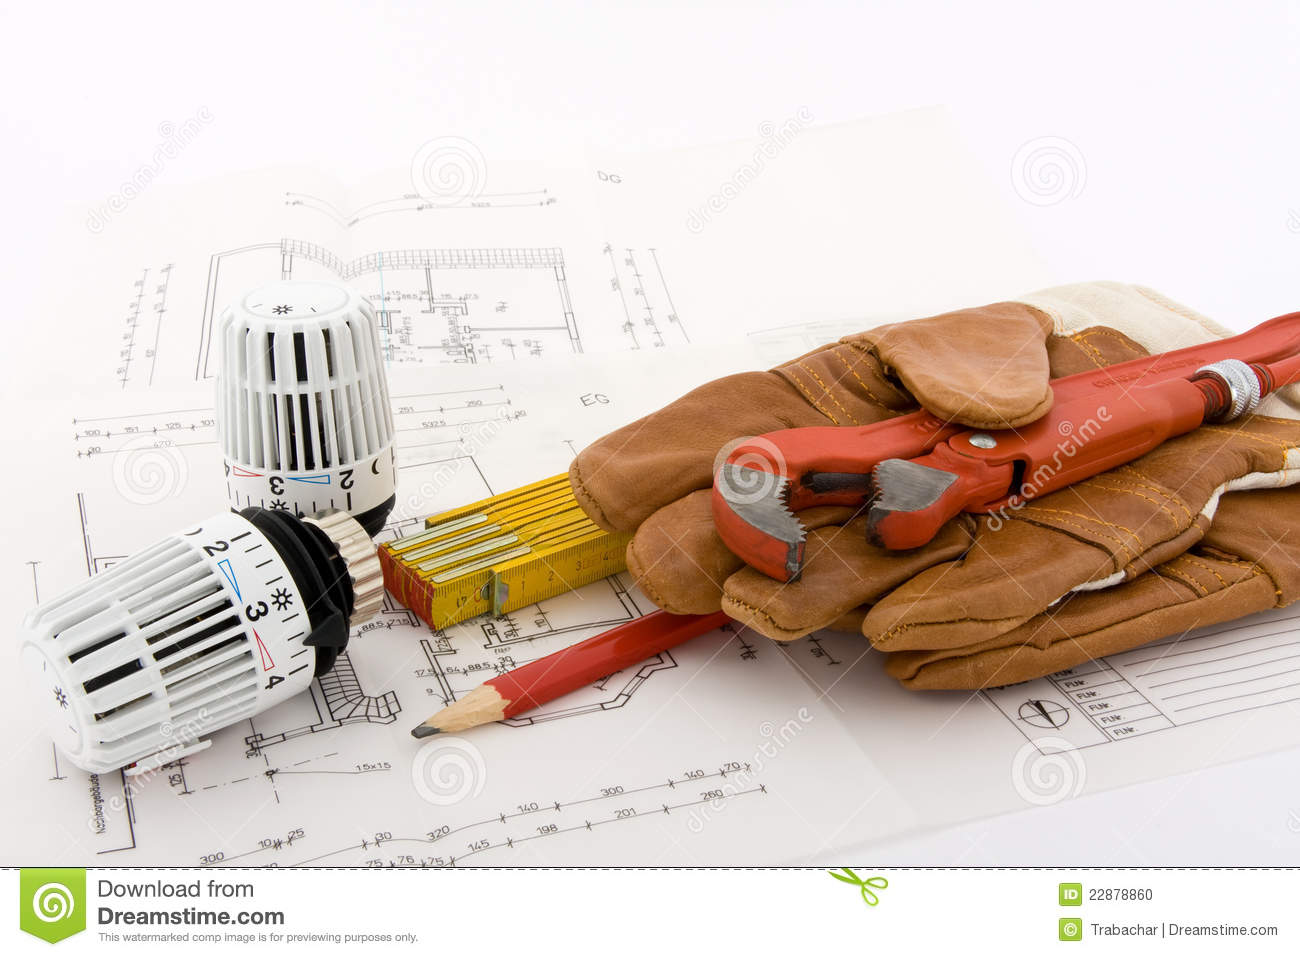 New Heating System Stock Photo Image 22878860